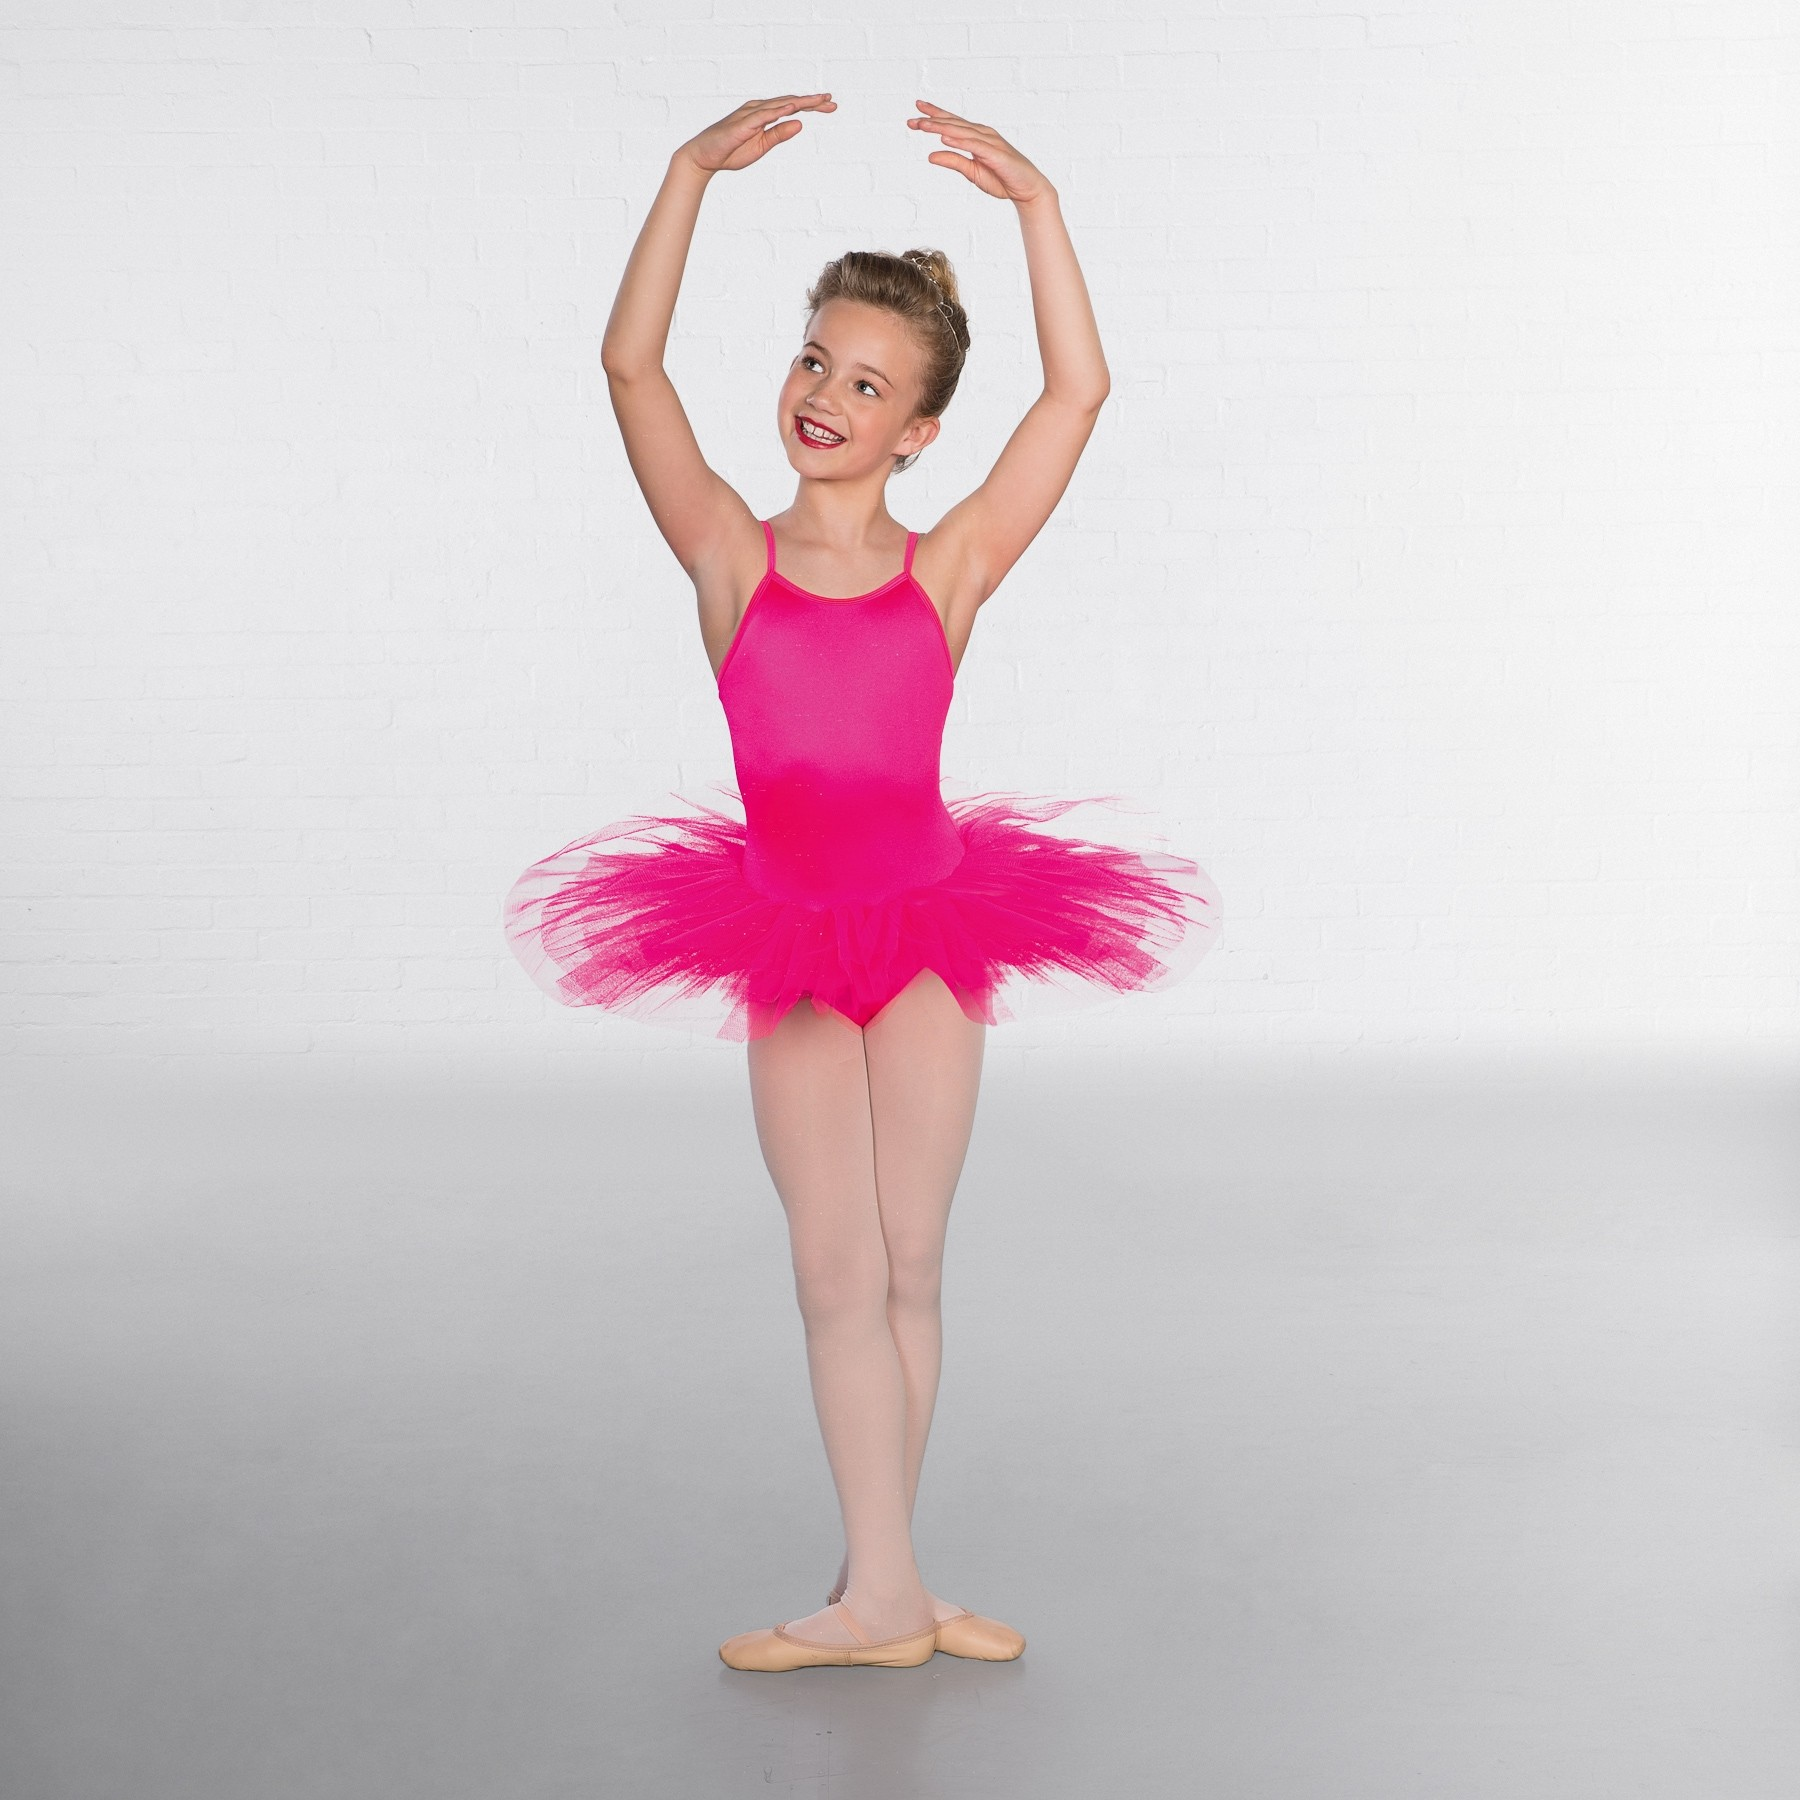 1st Position Nylon Elastane 5 Layer Tutu (Flo Pink)